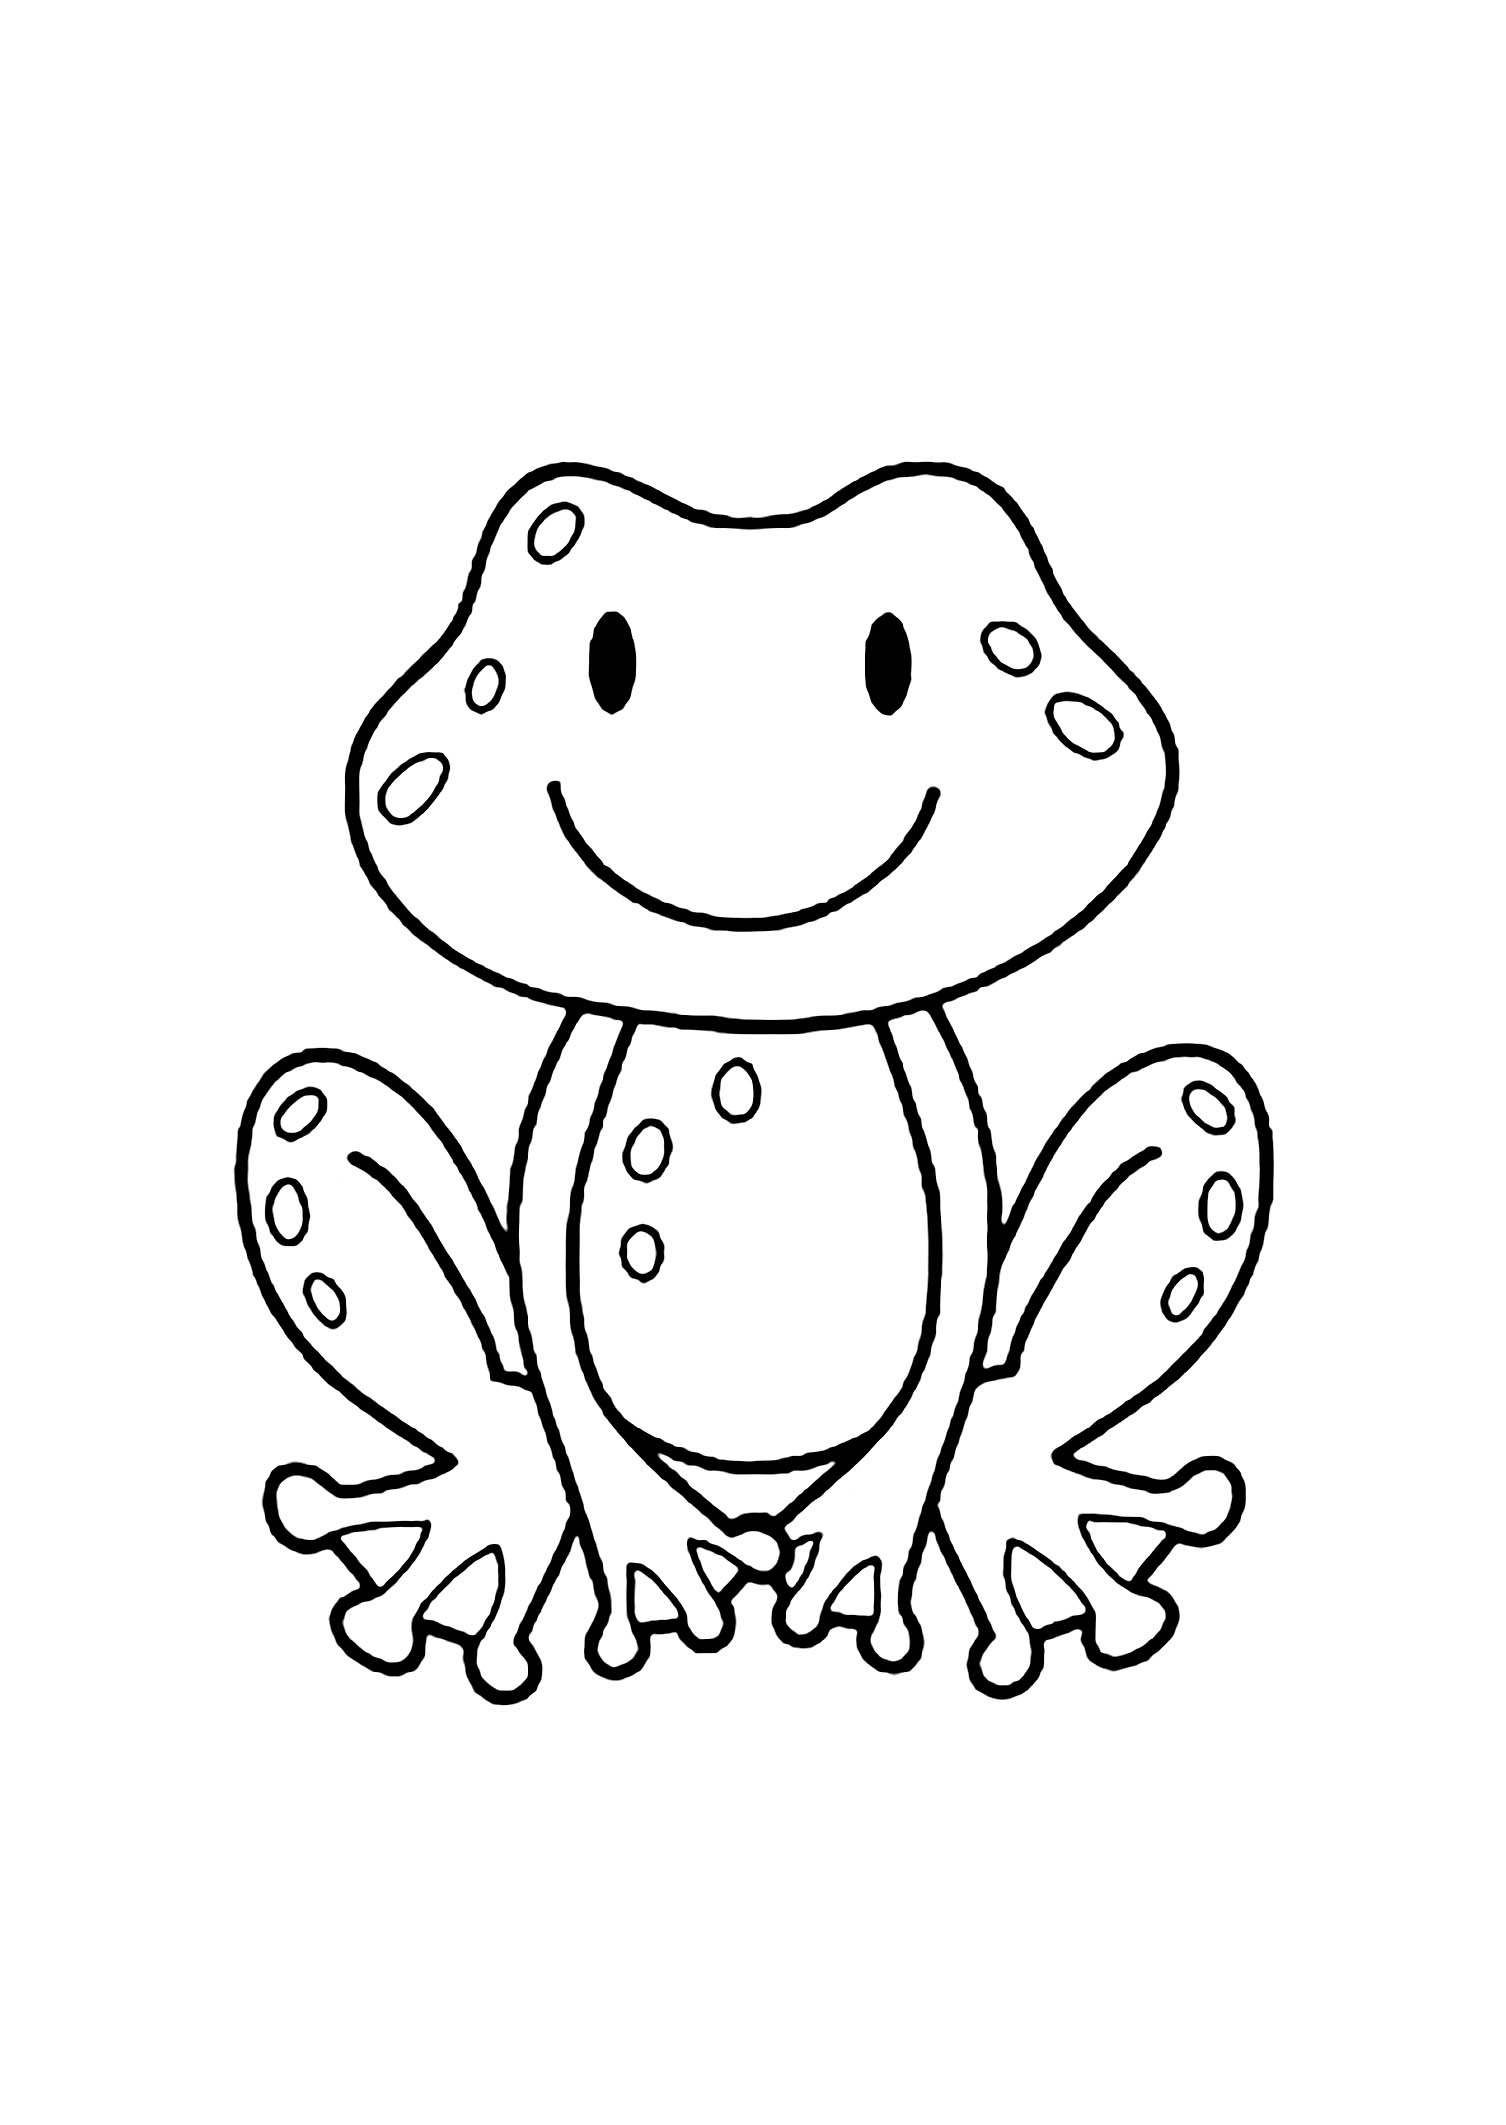 coloring book picture of a frog free printable frog coloring pages for kids book a coloring picture of frog